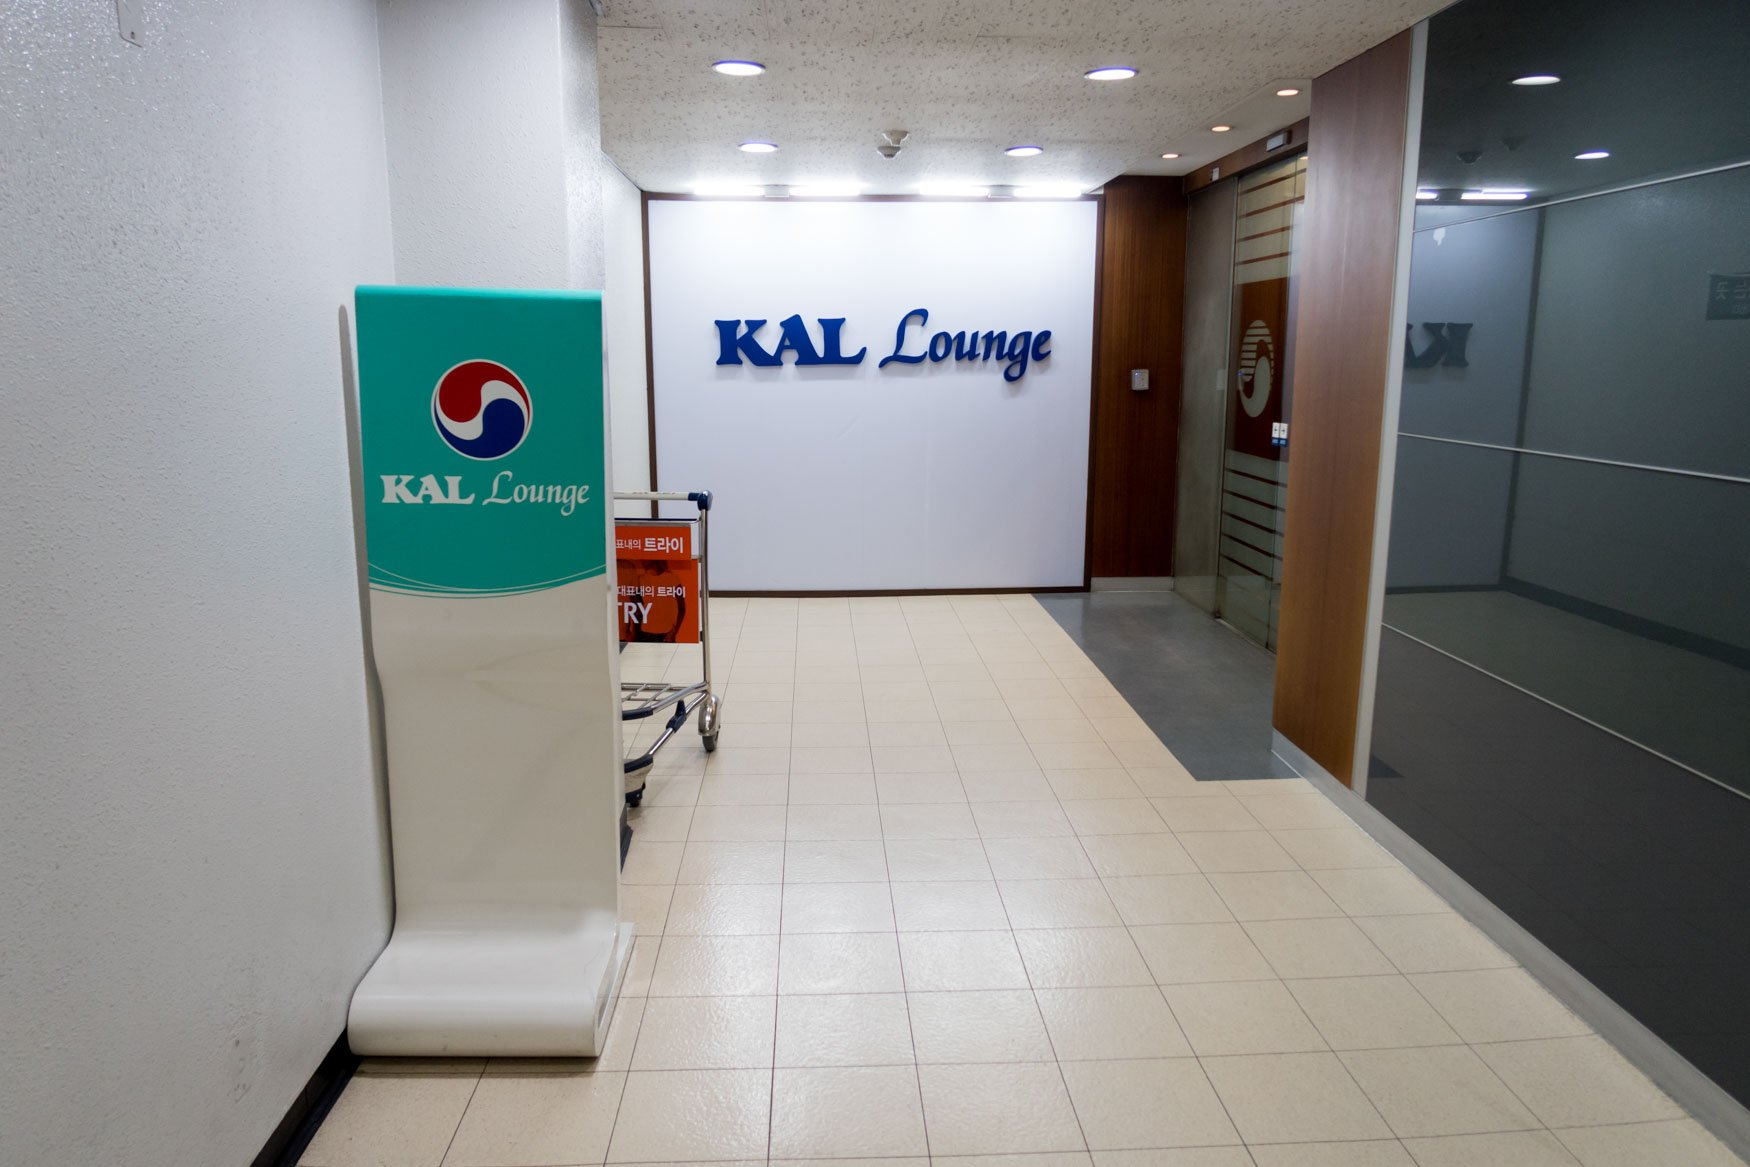 Domestic KAL Lounge at Seoul Gimpo